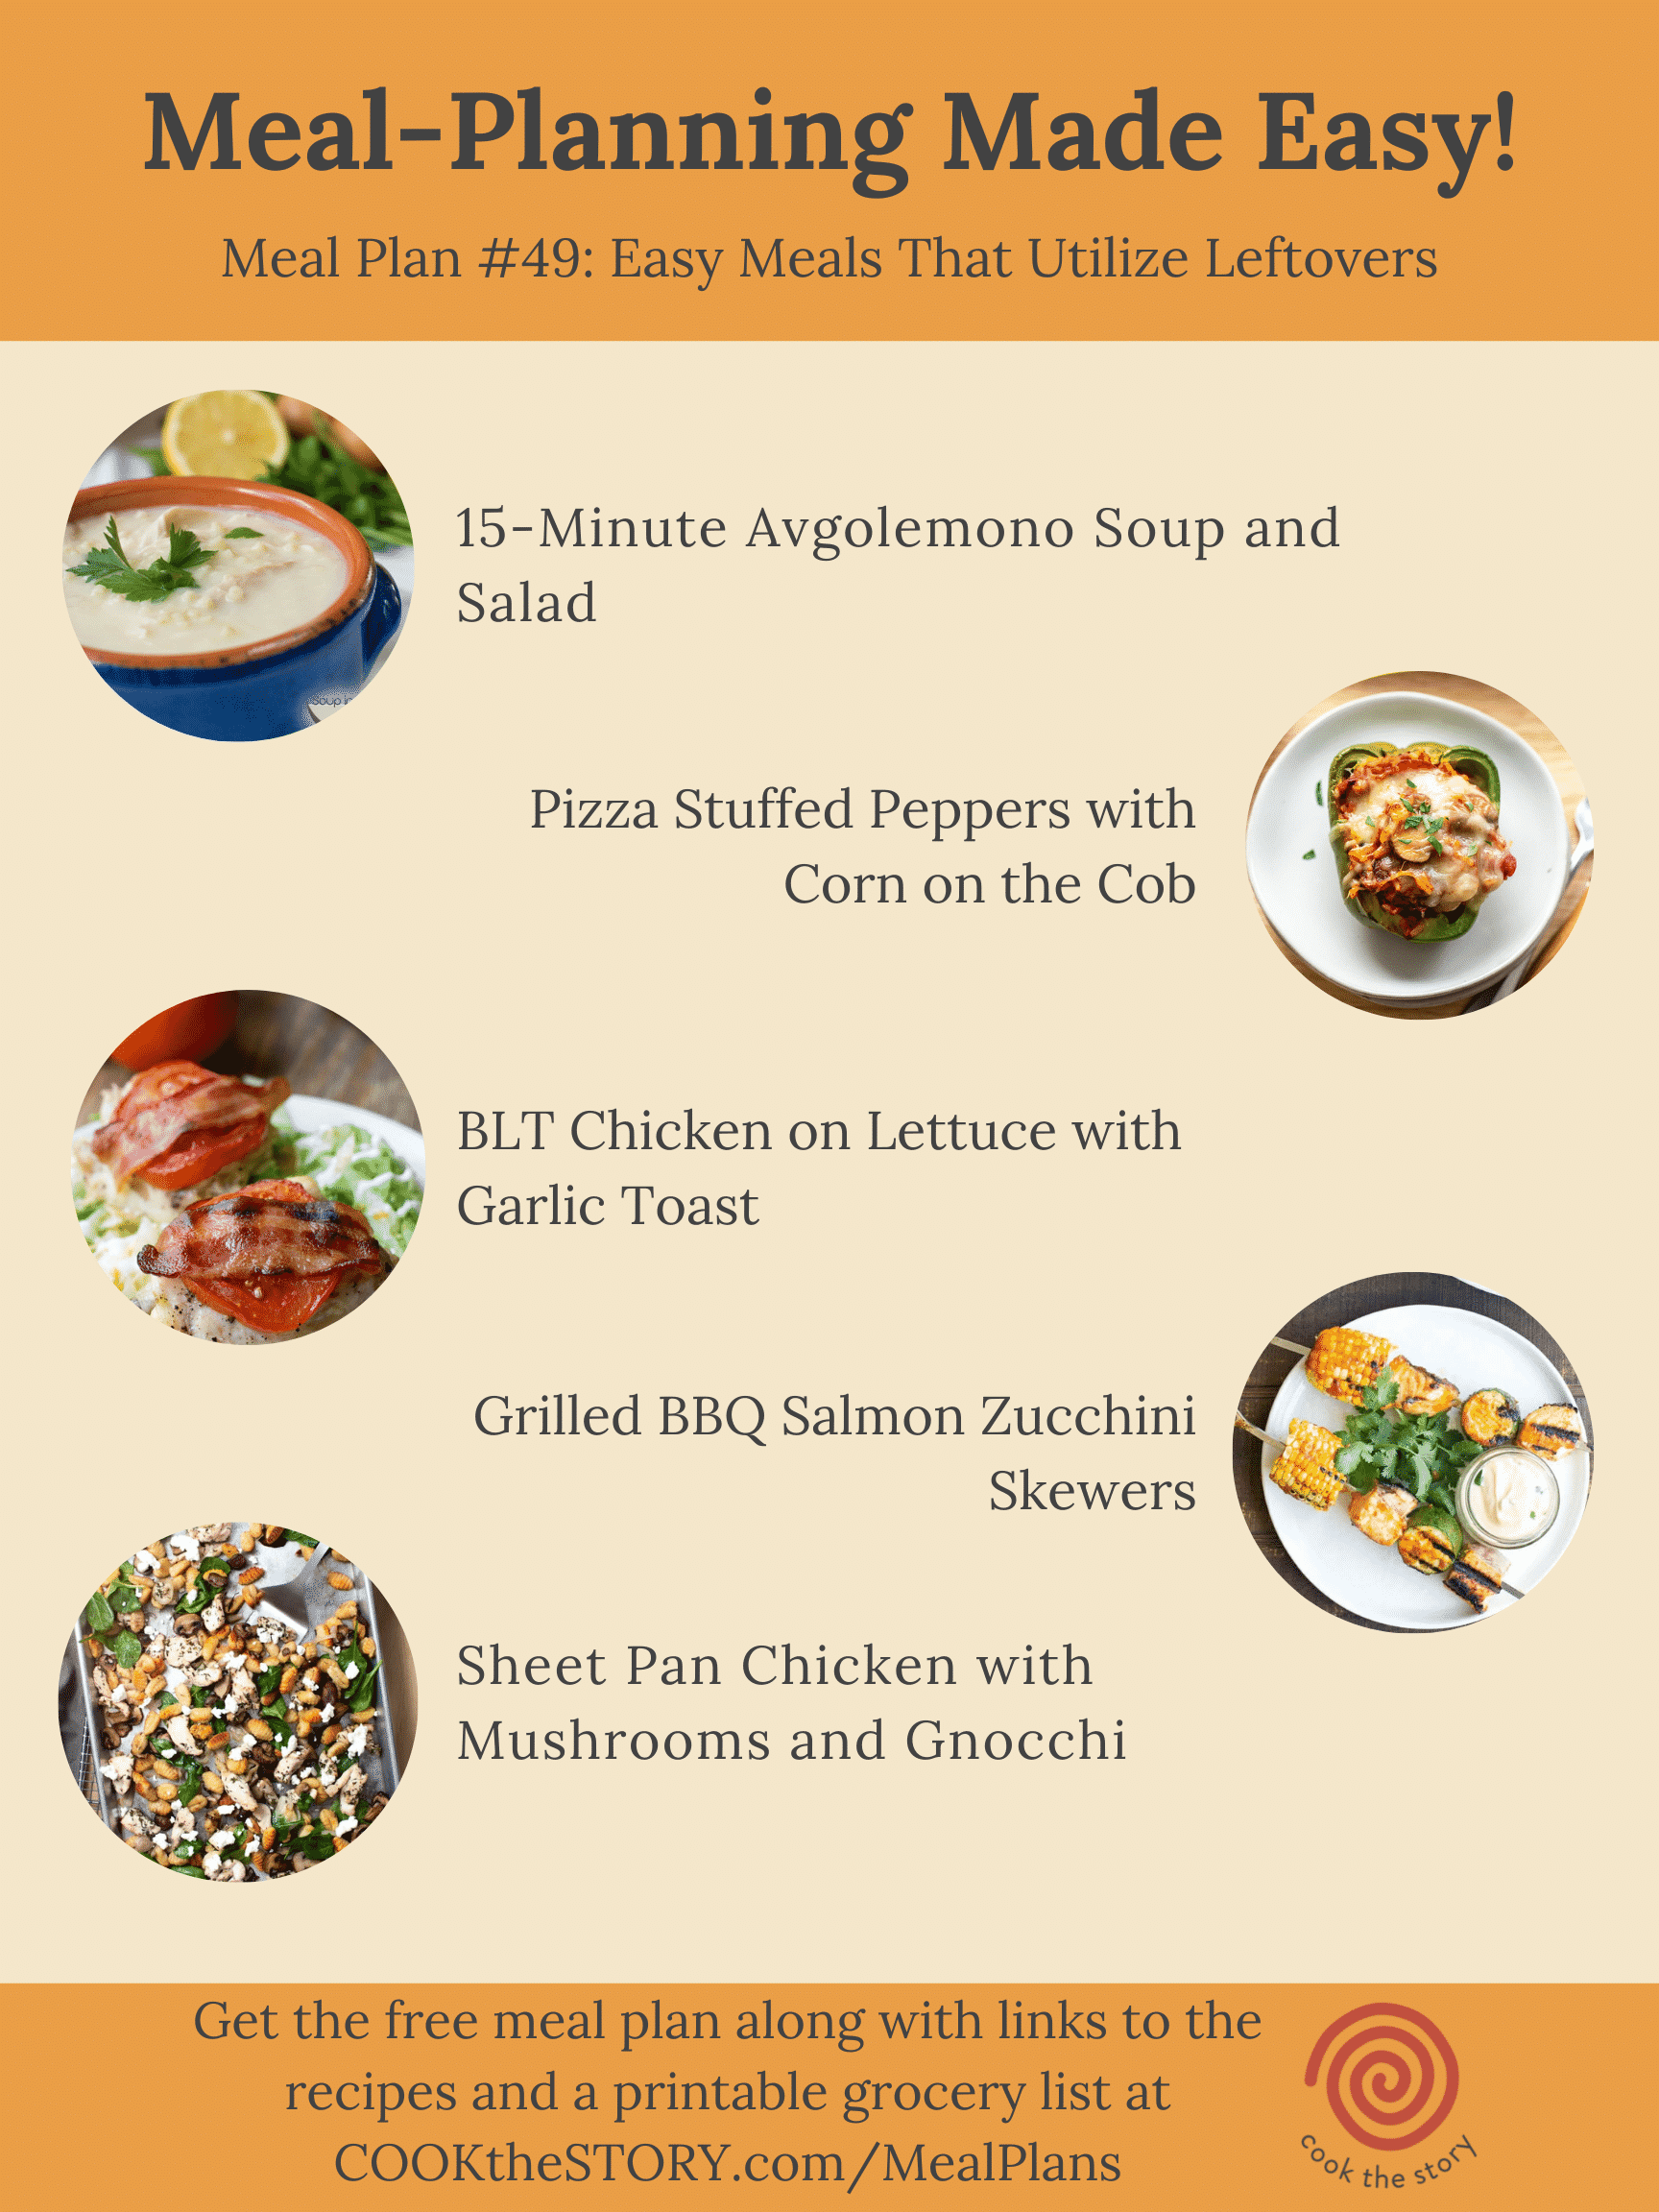 Meal Plan #49: Easy Recipes Using Leftovers